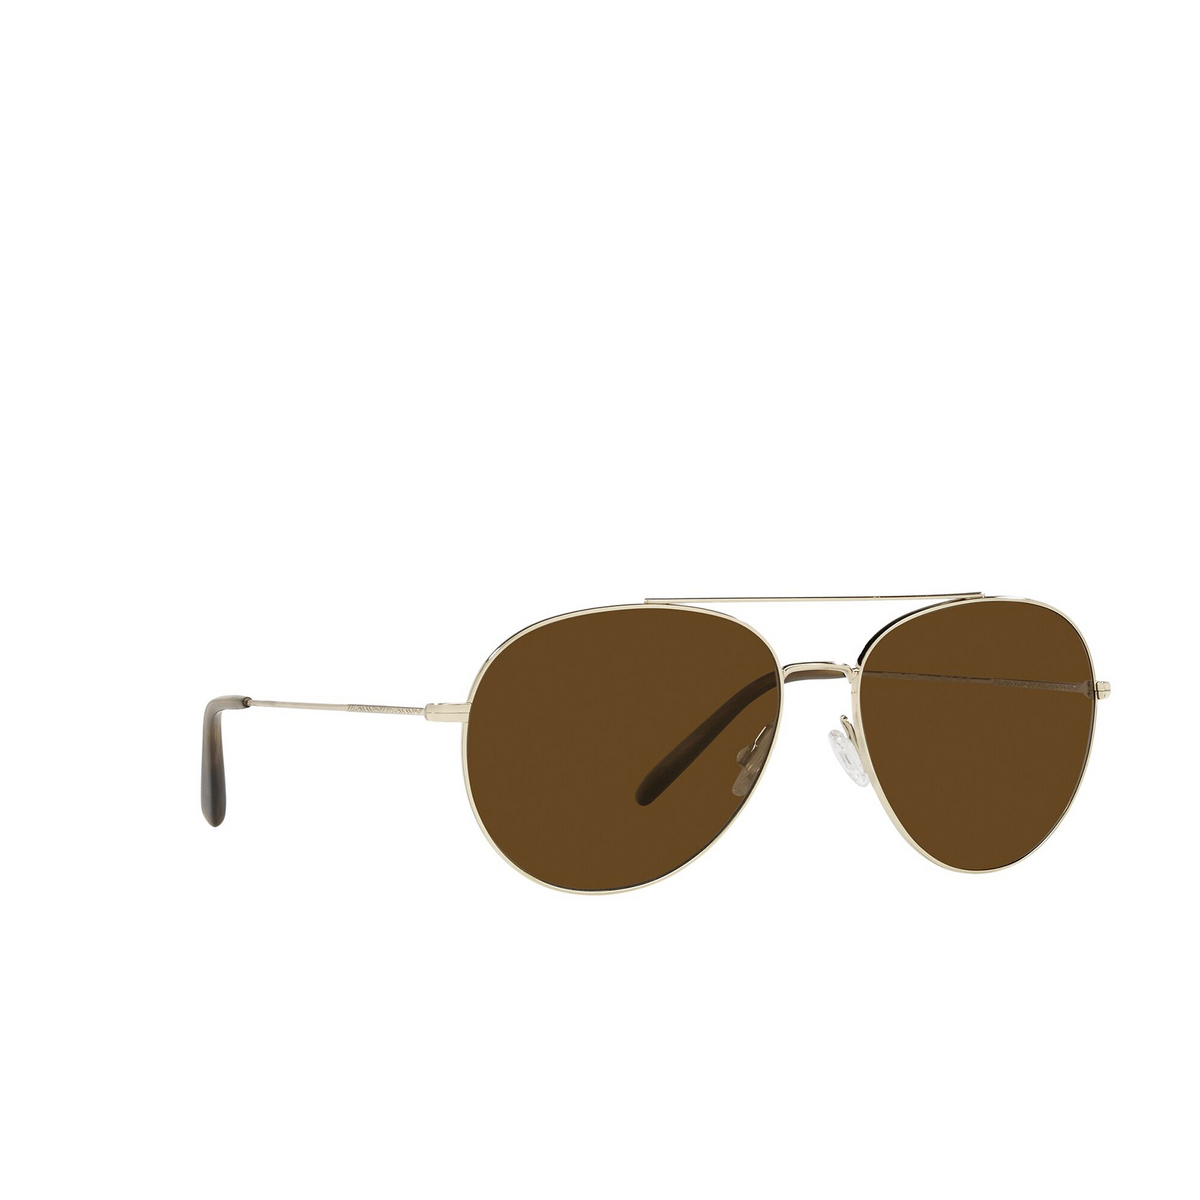 Oliver Peoples® Aviator Sunglasses: Airdale OV1286S color Soft Gold 503557 - three-quarters view.